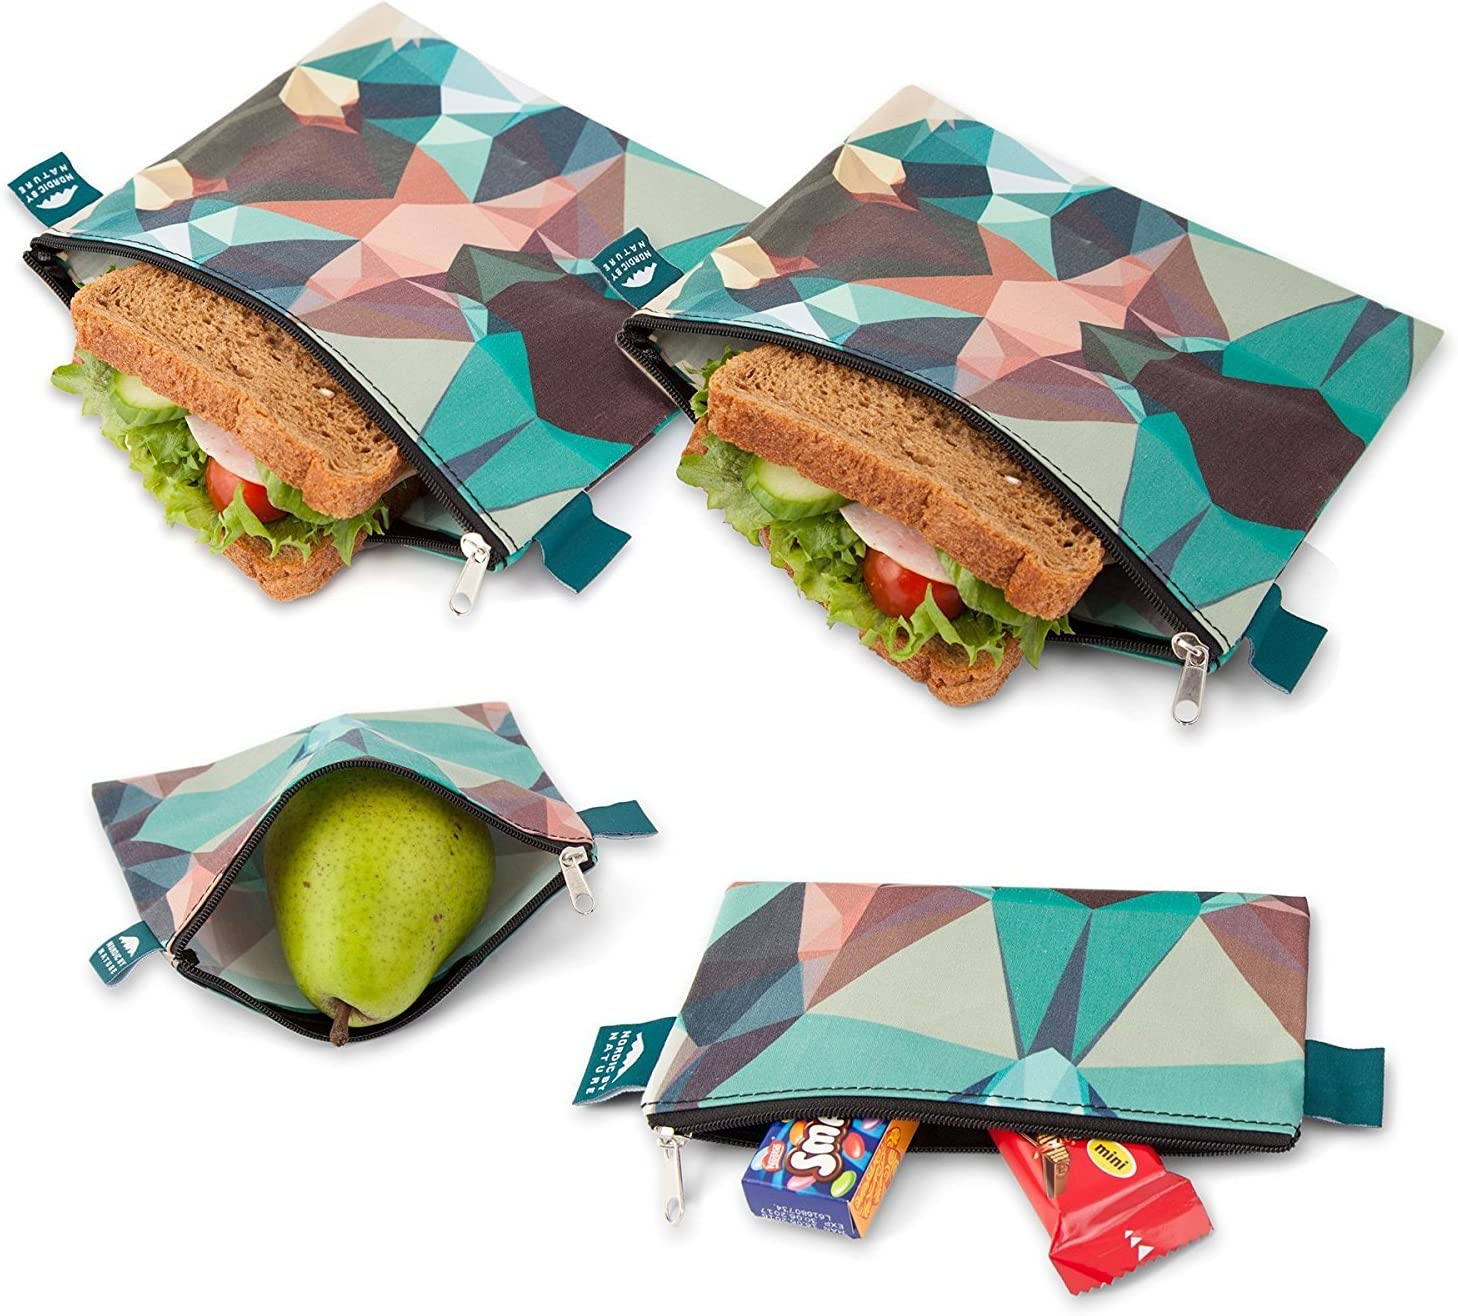 Nordic By Nature 4 Pack - Reusable Sandwich Bags Dishwasher Safe BPA Free - Durable Washable Quick Dry Cloth Baggies -Reusable Snack Bags for Kids School Lunches - Easy Open Zipper - (Mosaic Camo)